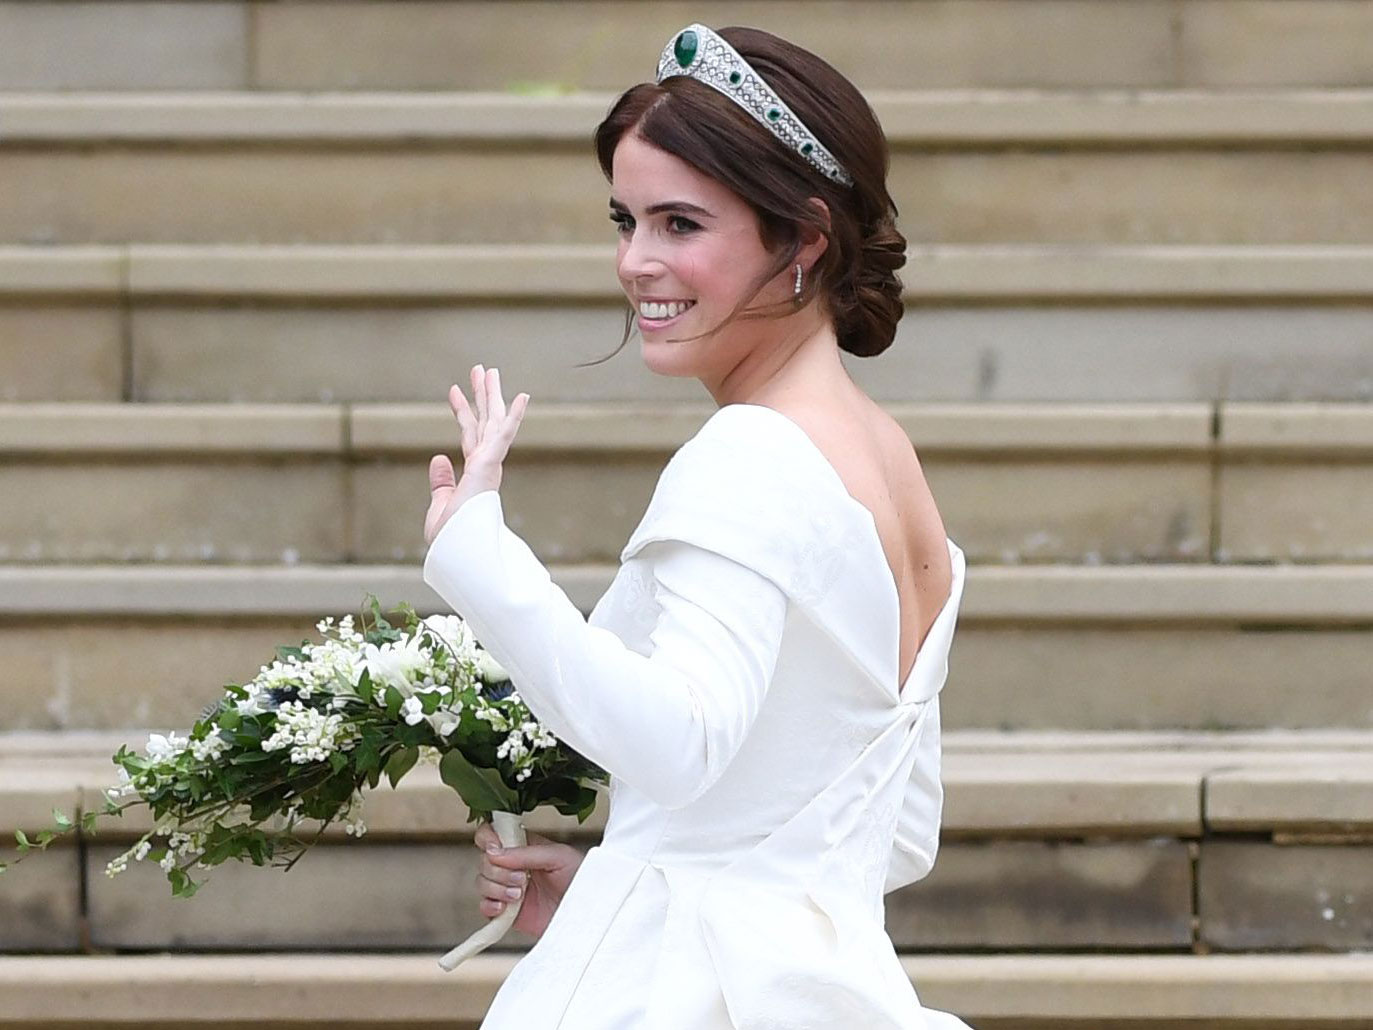 Princess Eugenie Wedding Dress Details: Who Designed It and More? - The Knot News